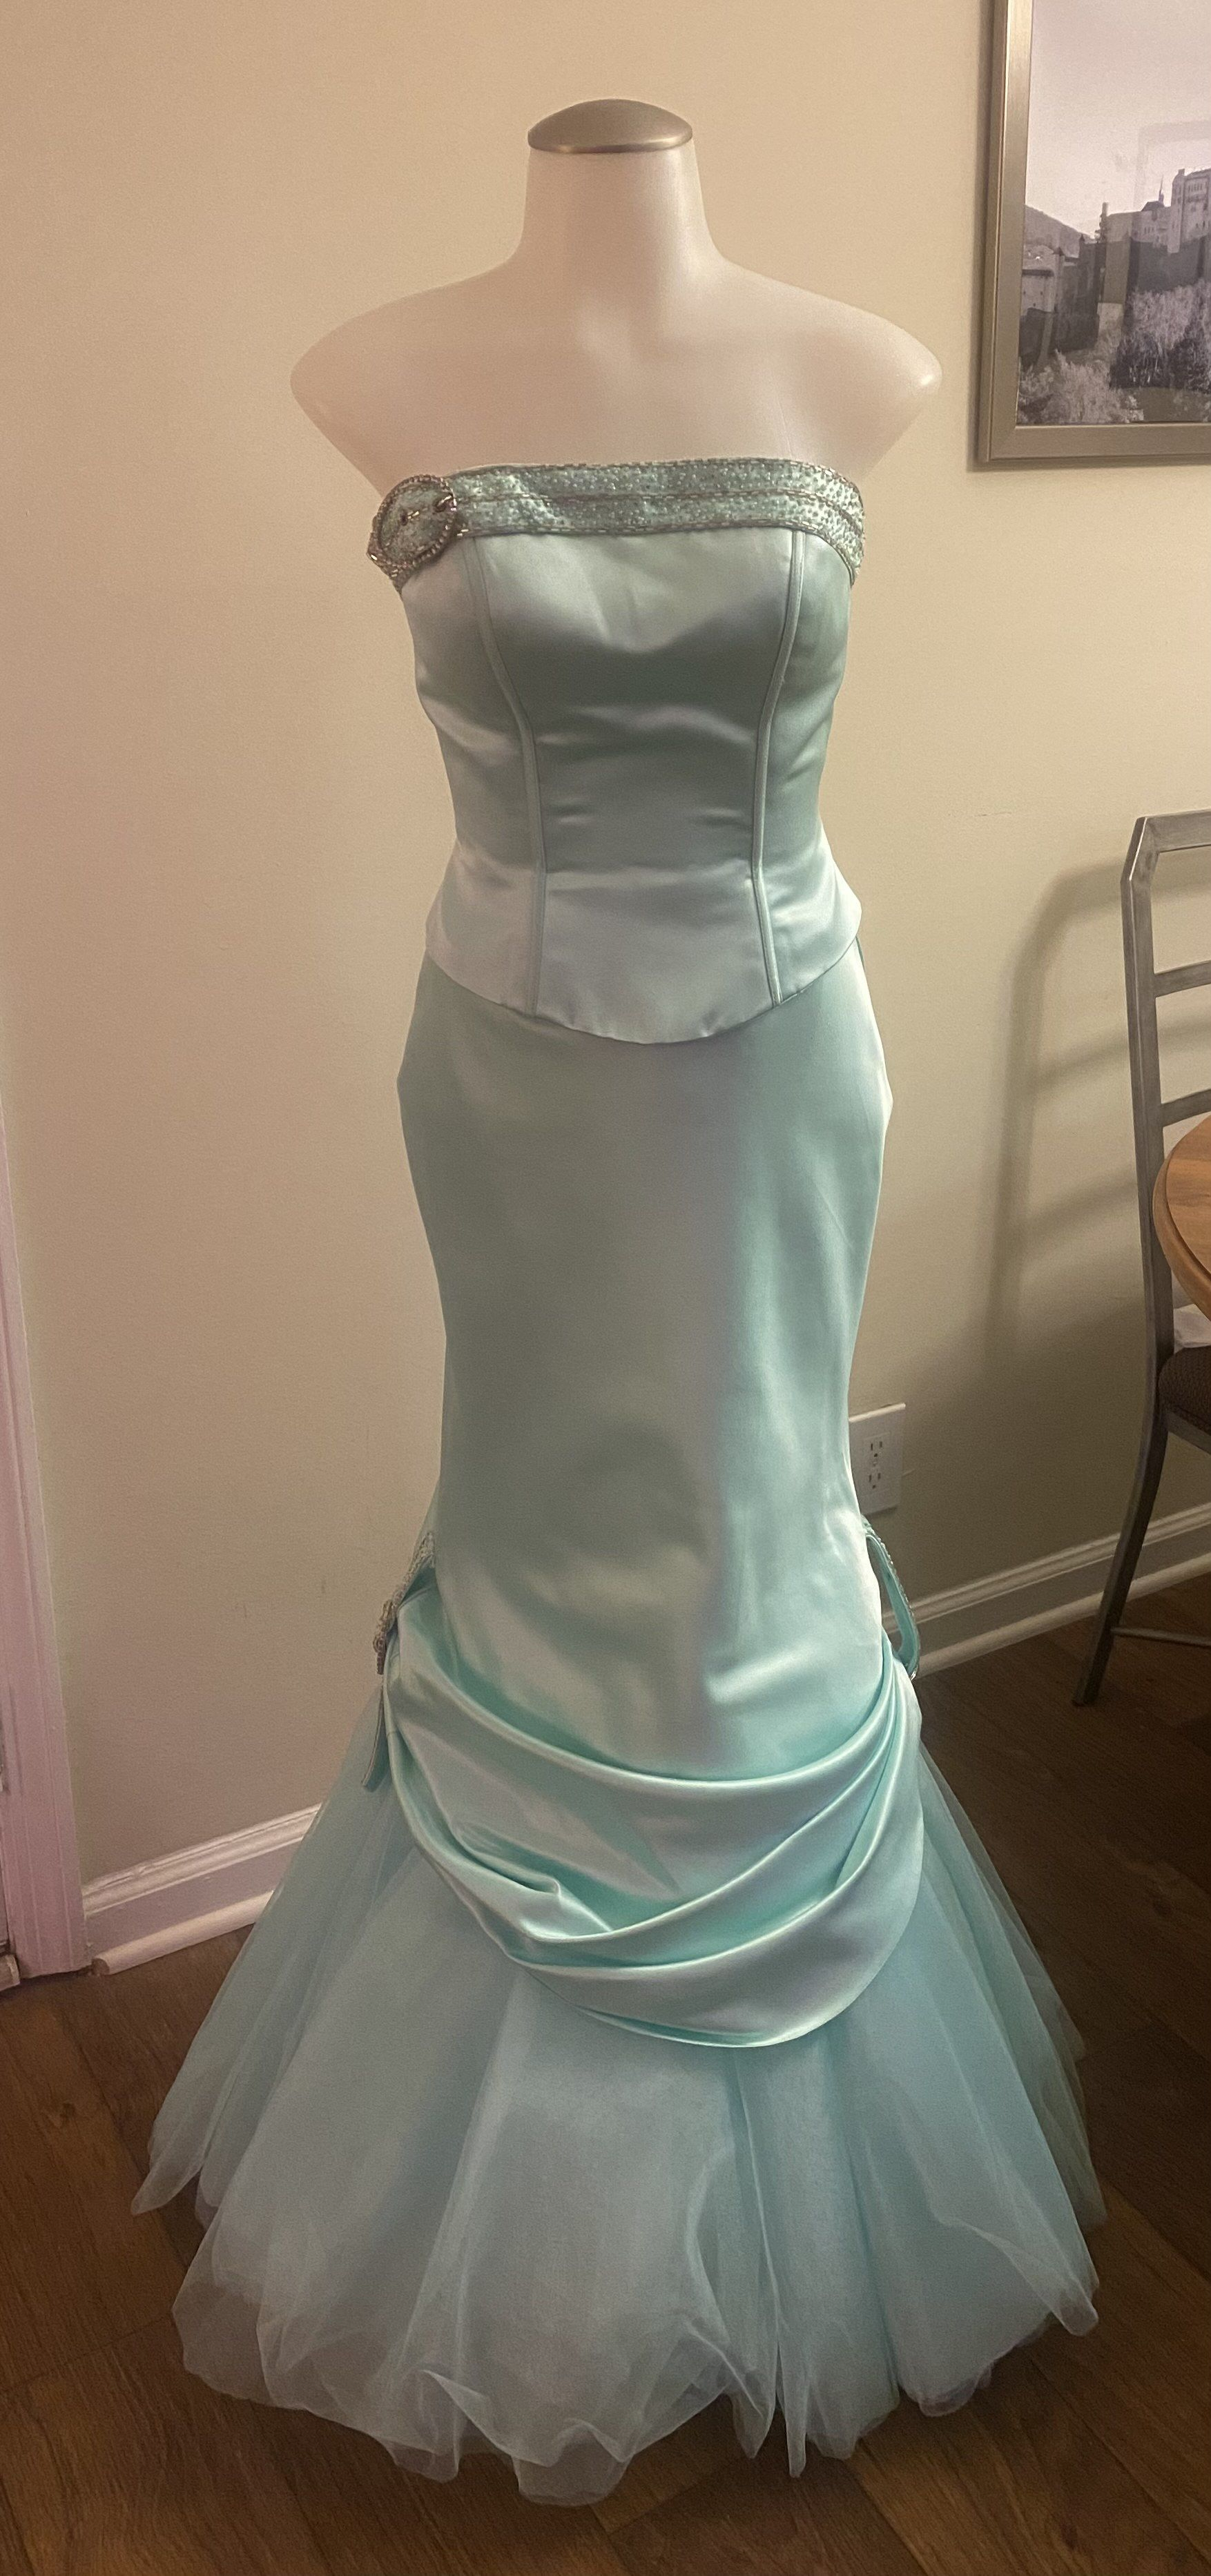 Tiffany Designs Green Size 2 Corset Tall Height Mermaid Dress on Queenly